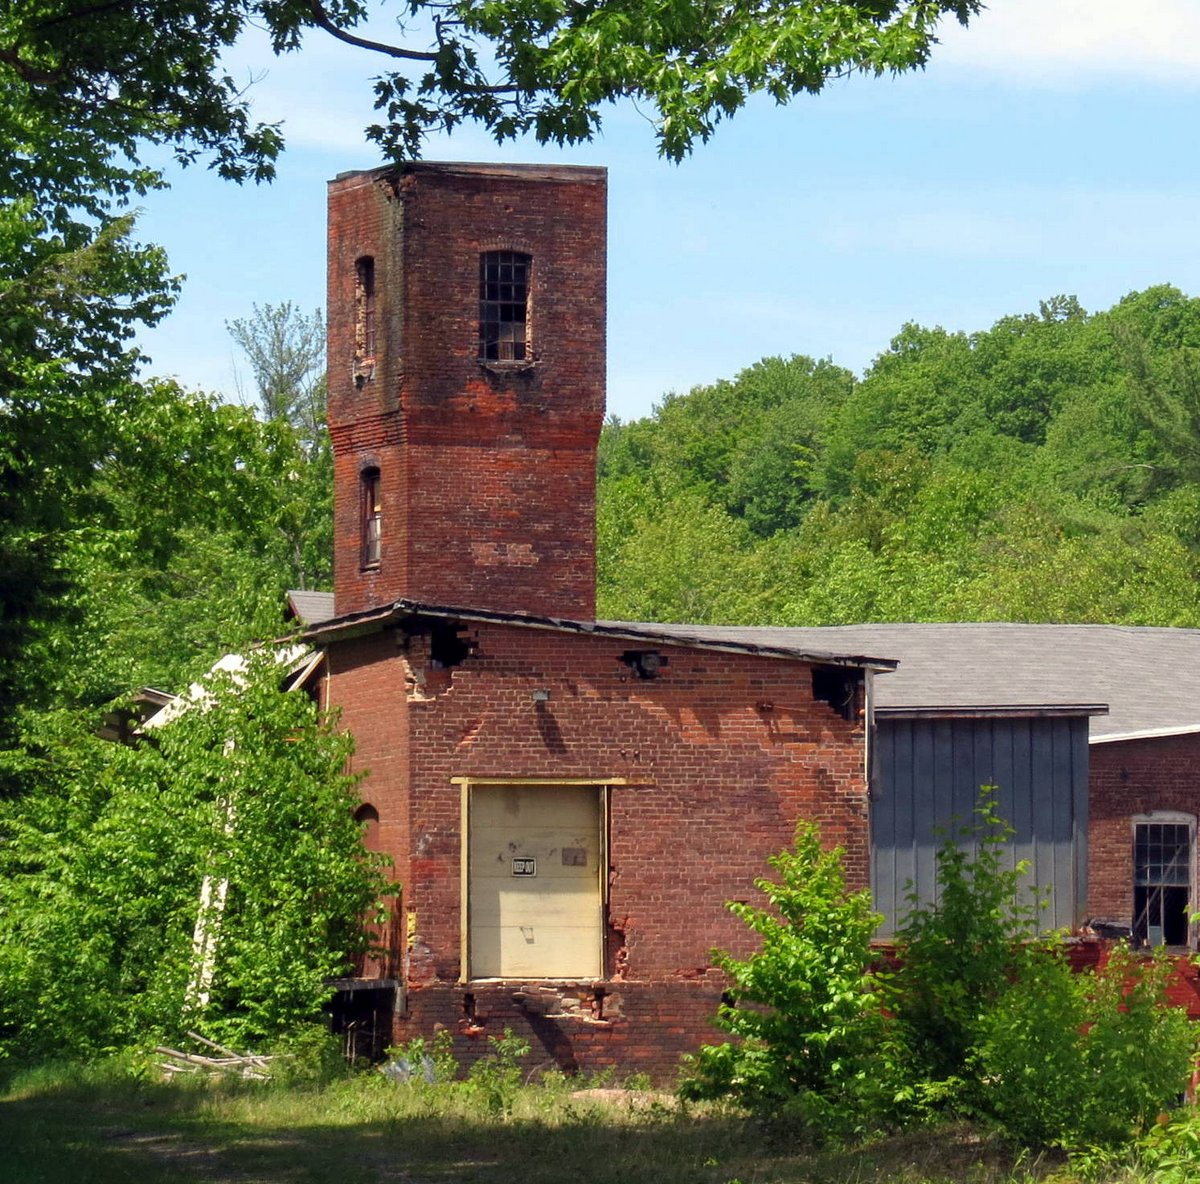 10. Abandoned Paper Mill